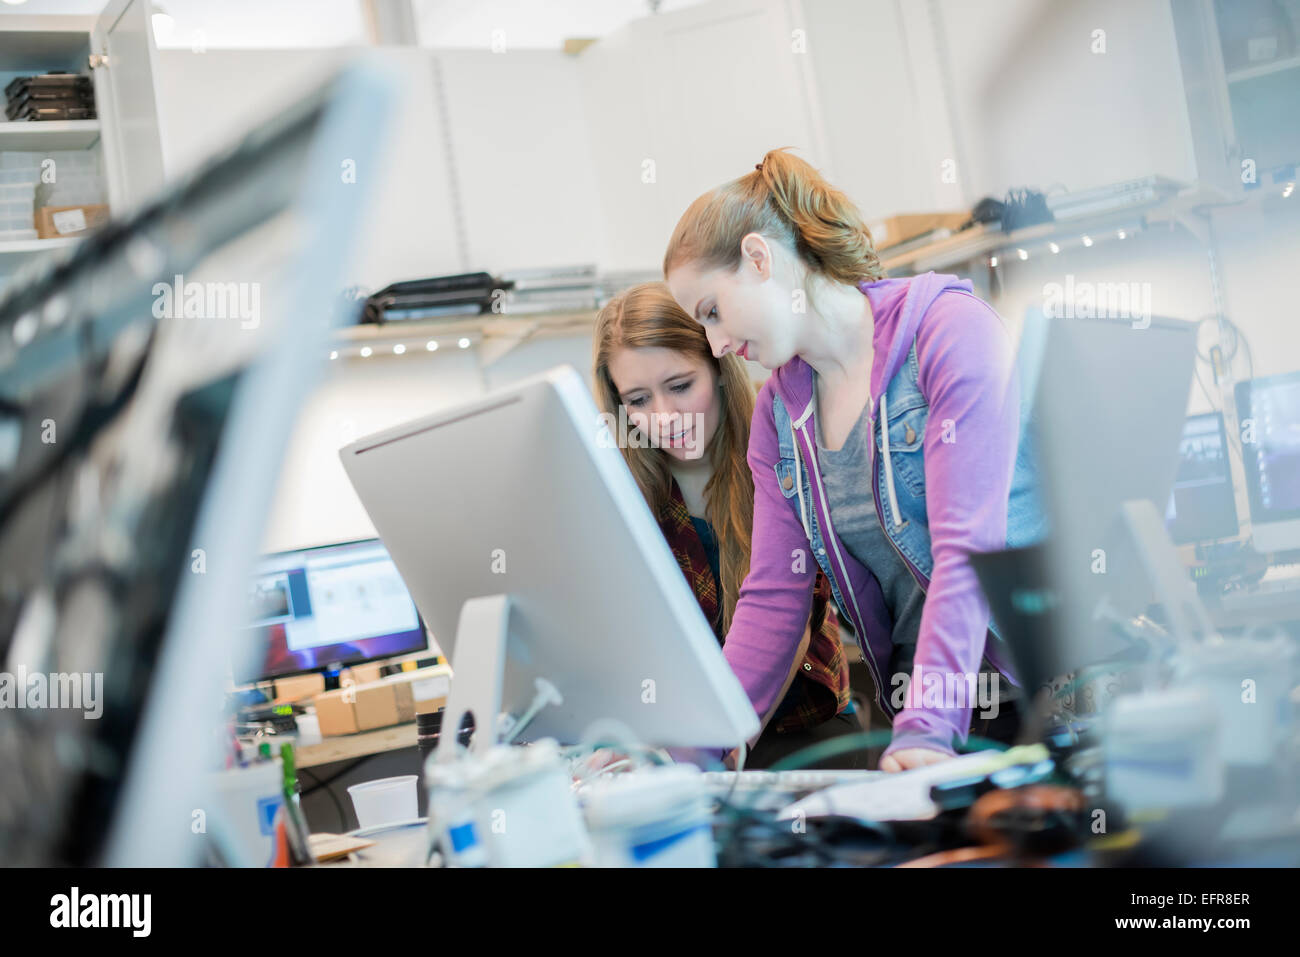 Computer Repair Shop. Two women working together leaning ou a counter. - Stock Image